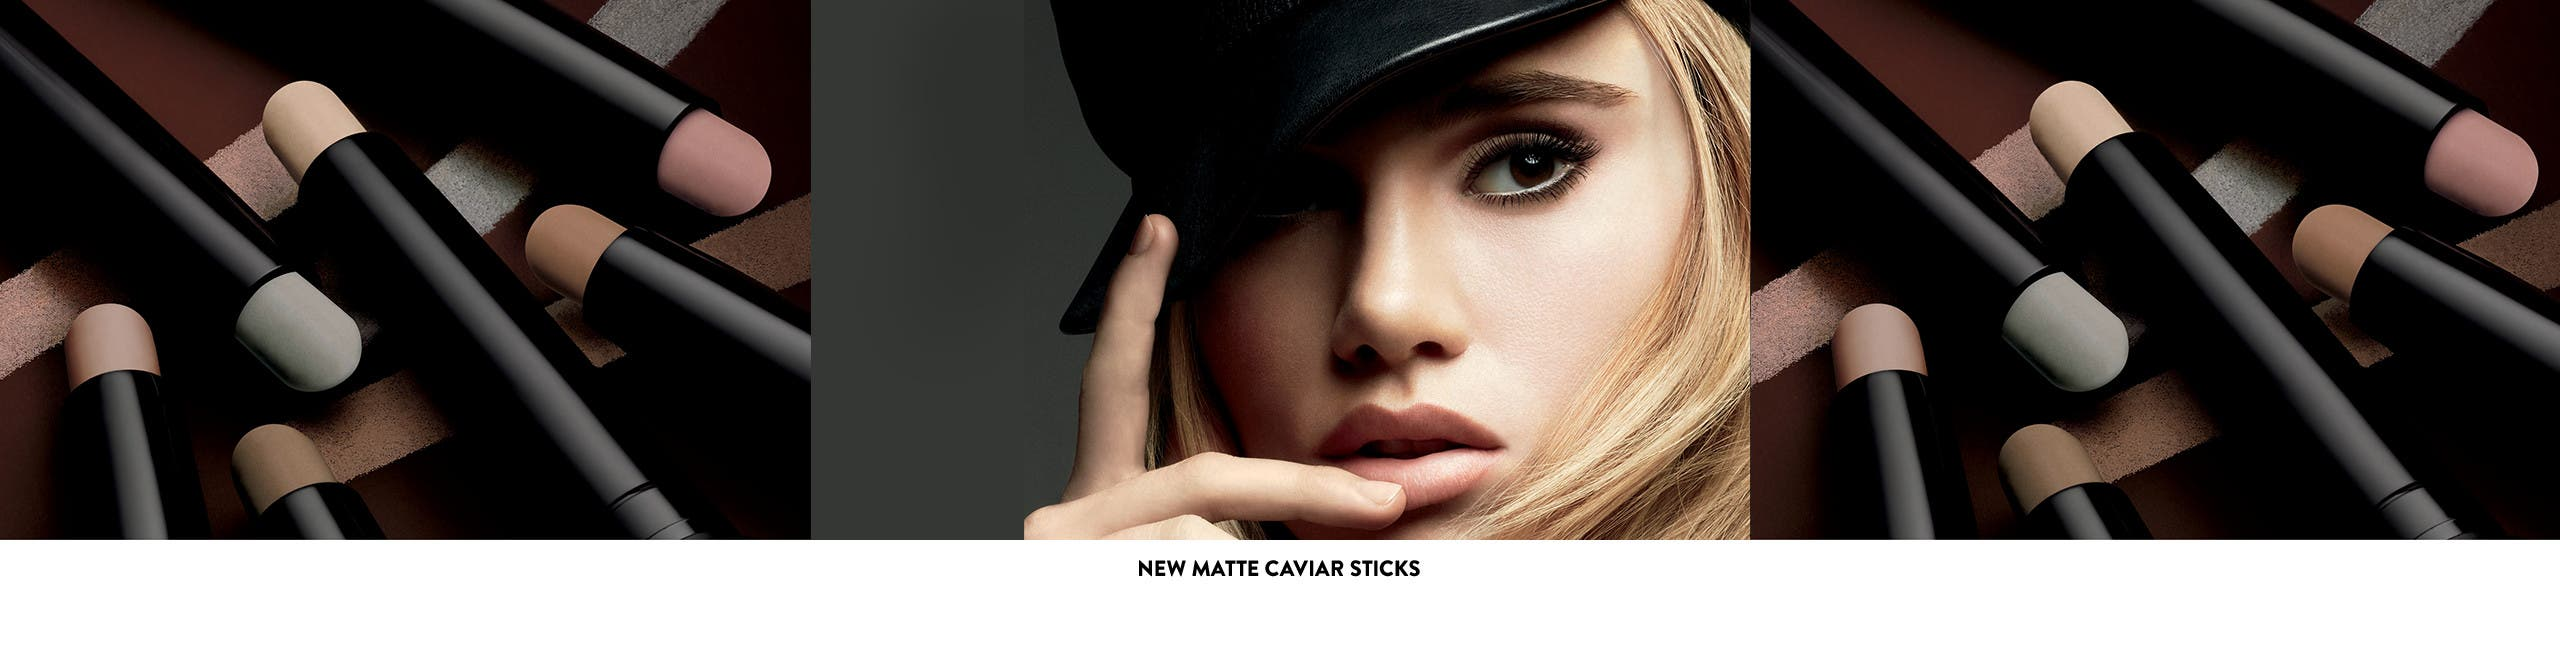 New Laura Mercier Matte Caviar Sticks.